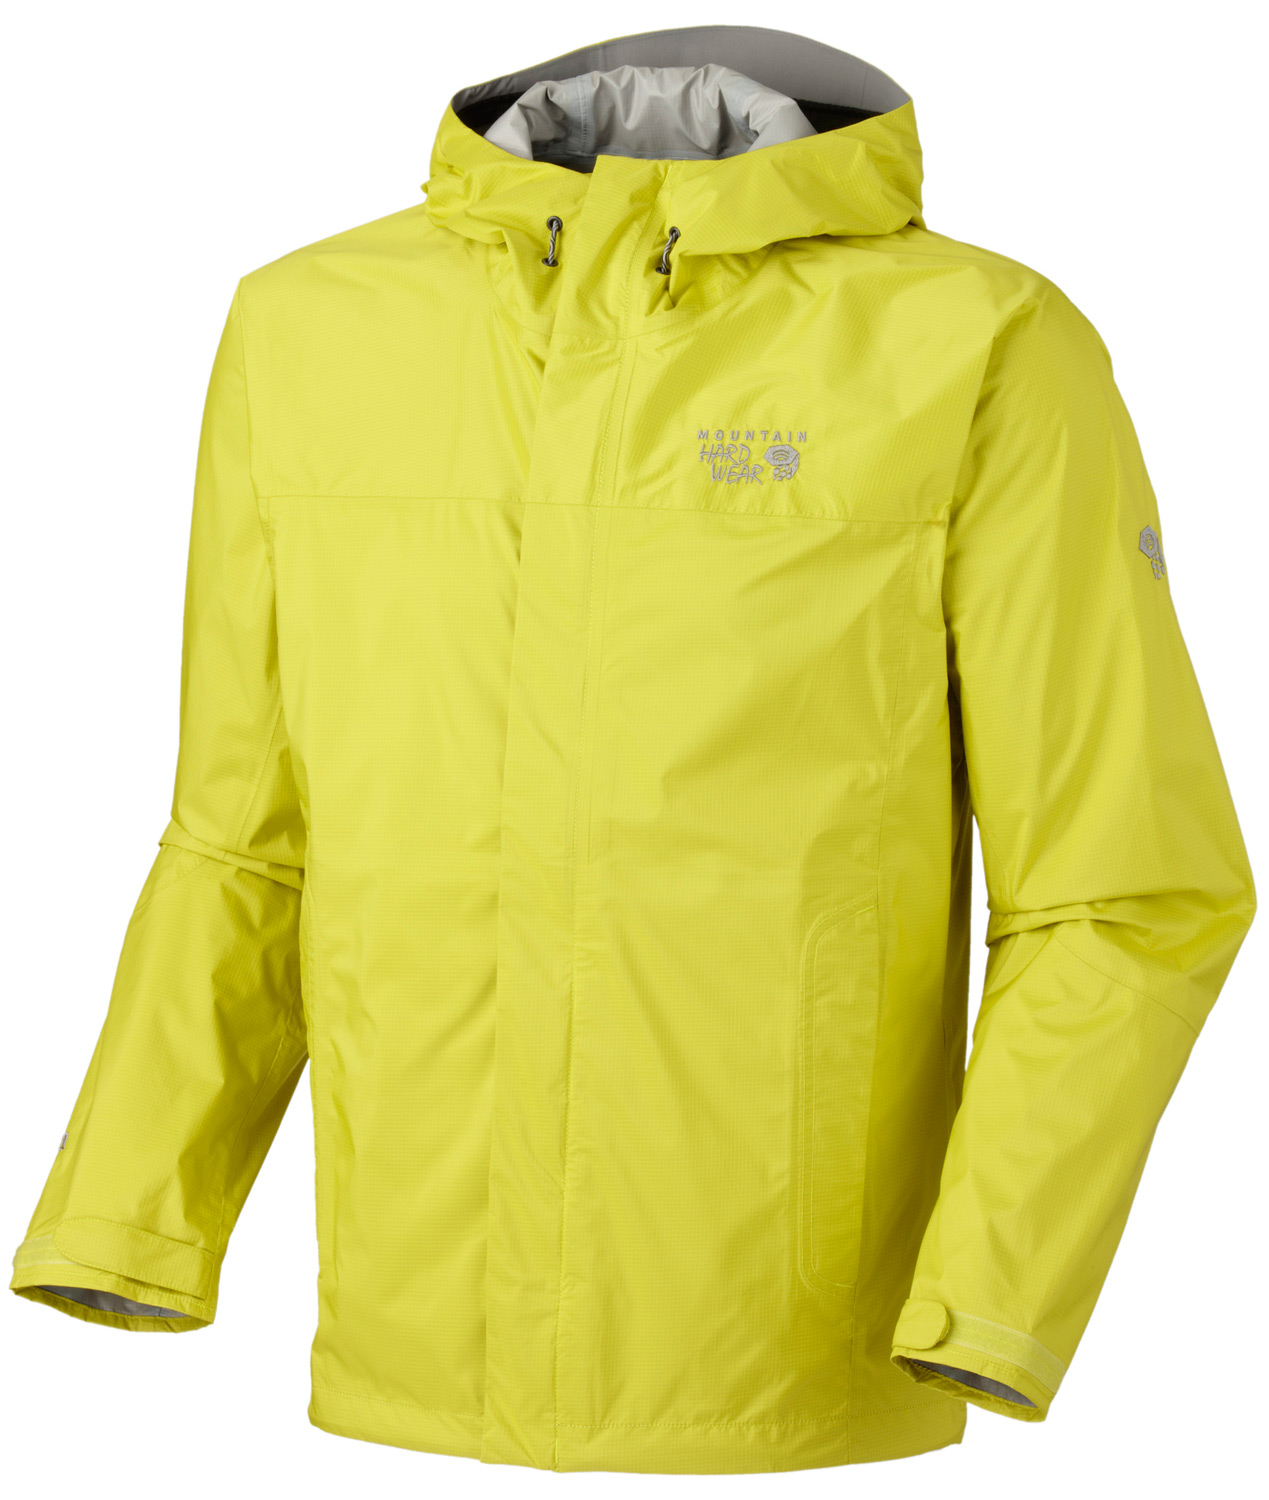 "Key Features of the Mountain Hardwear Epic Jacket: Attached hood with extra-beefy brim for added protection against the elements Pit zips Micro-Chamois™-lined chin guard eliminates zipper chafe Dual hem drawcords for quick fit adjustments Adjustable Velcro® cuffs for quick fit adjustments AVG. WEIGHT: 14 oz; 395 g CENTER BACK LENGTH: 29""; 74 cm FABRIC: body: Epic 2.5L (100% nylon) - $69.95"